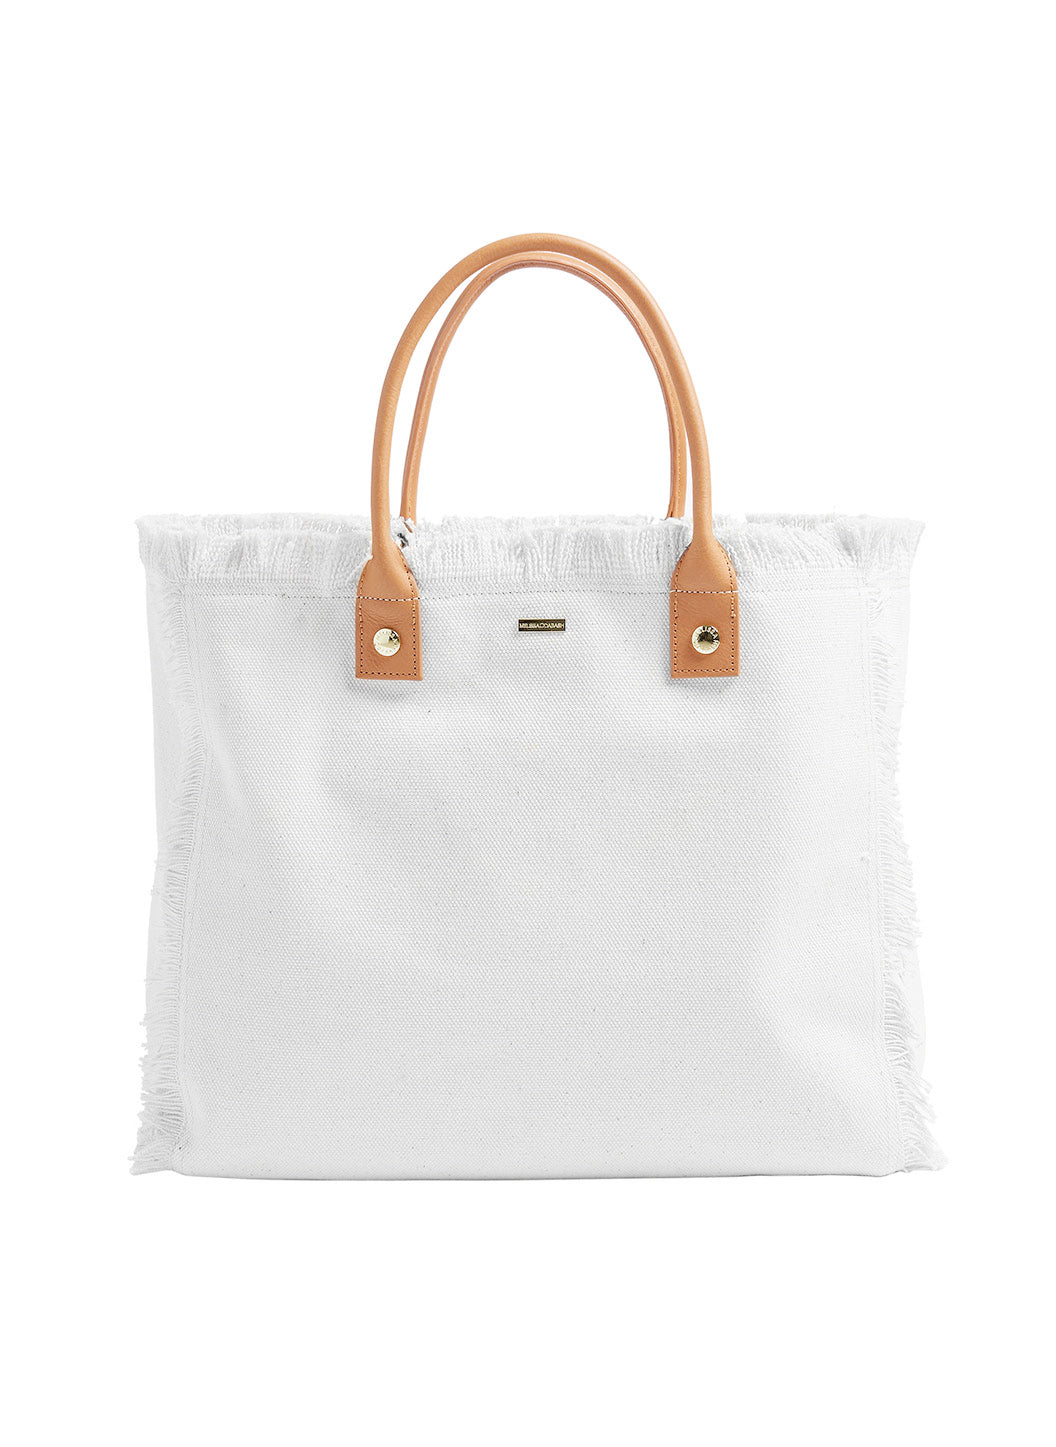 Cap Ferrat Large Beach Tote White - Melissa Odabash Personalised Bags